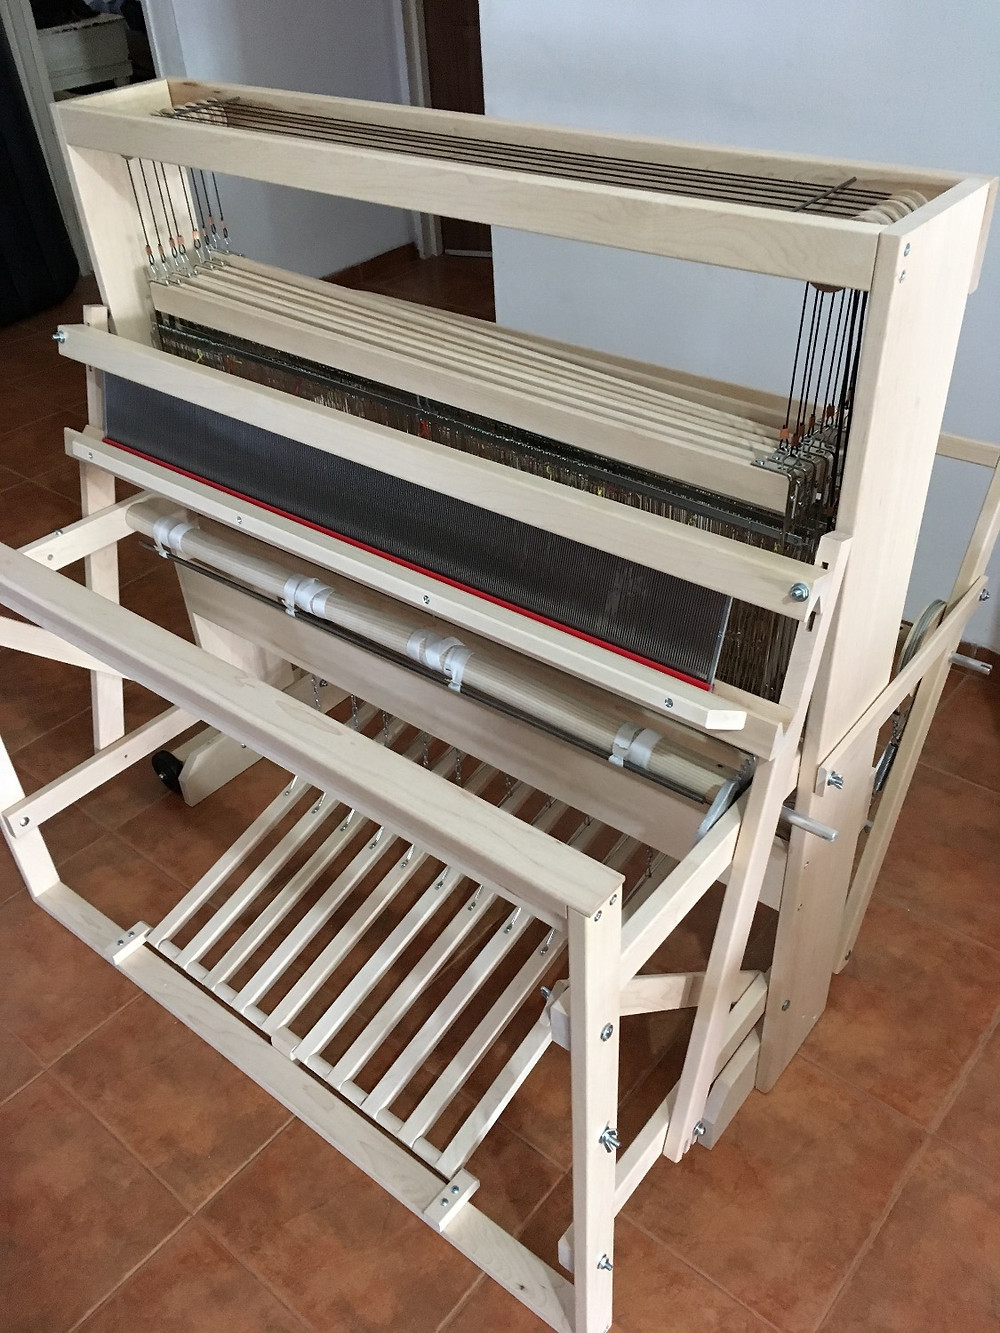 The new loom - ready for action!